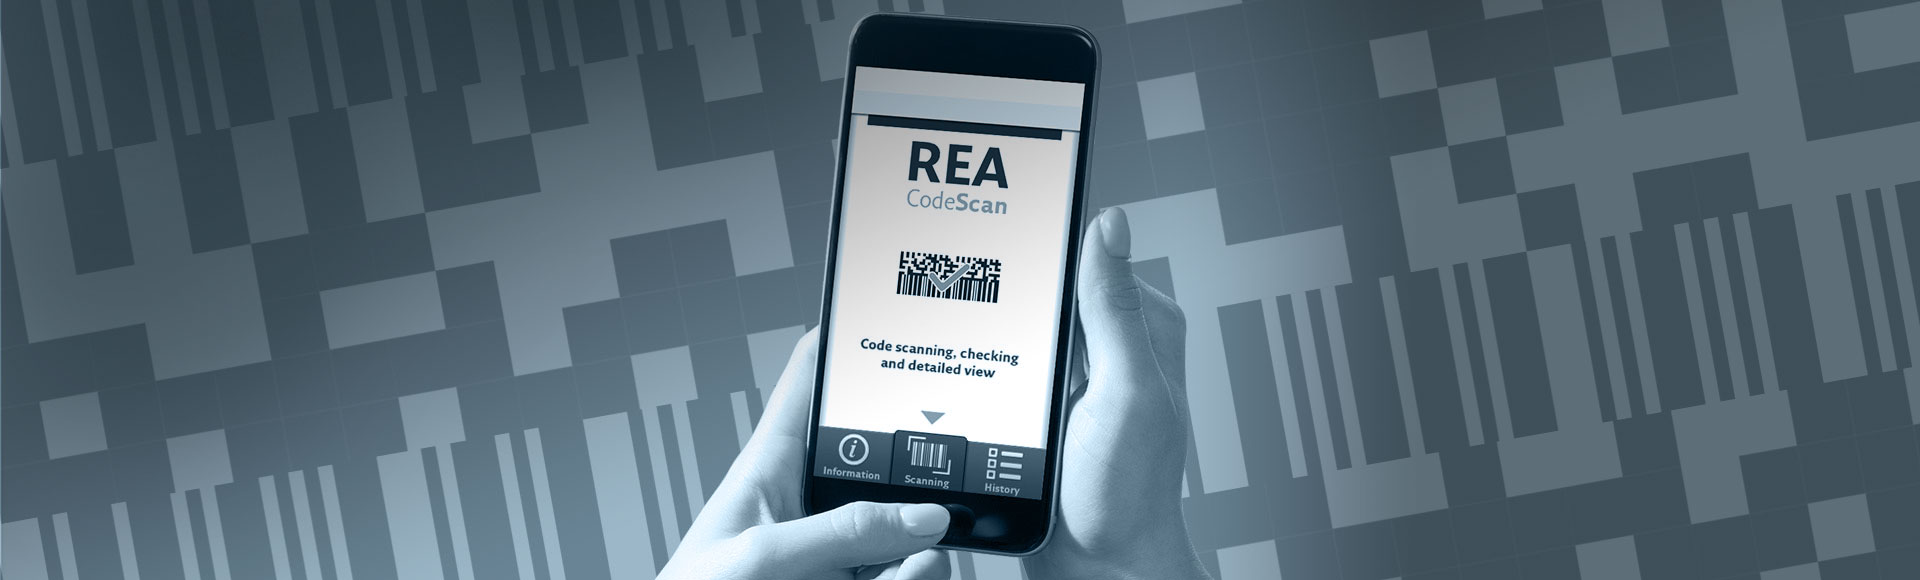 REA CodeScan App for decrypting codes - REA CodeScan App